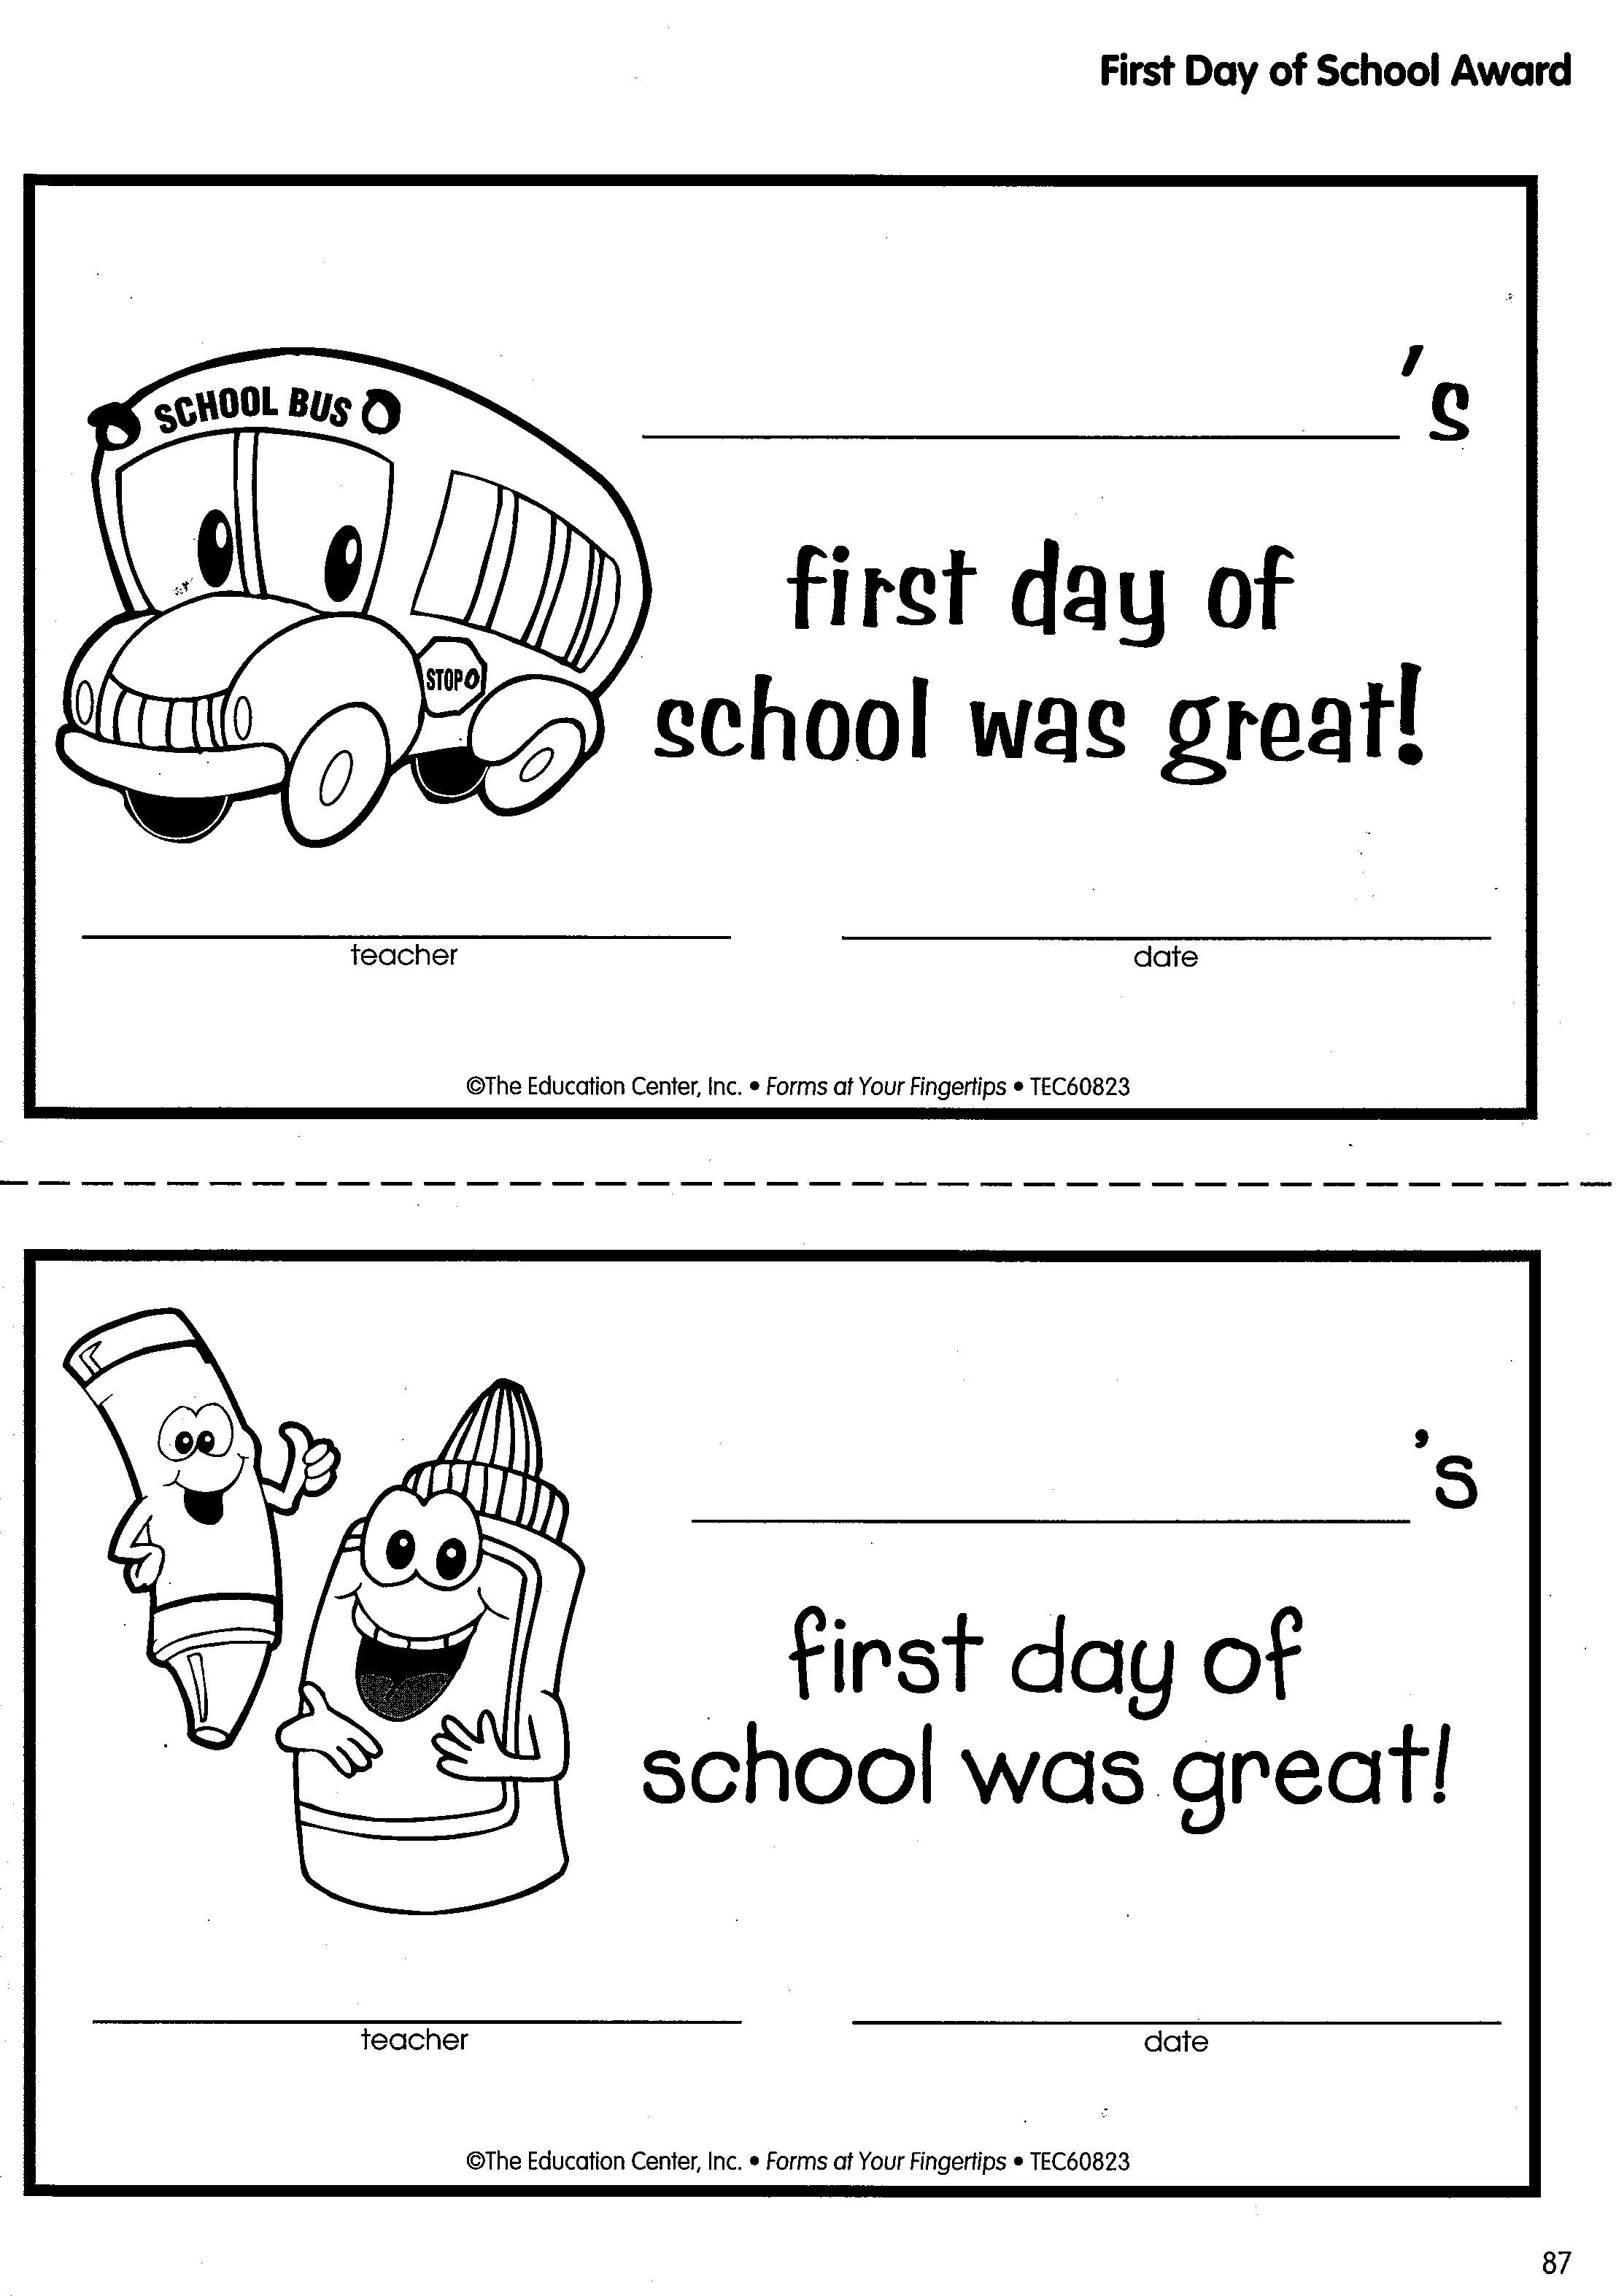 First Day Of School Awards